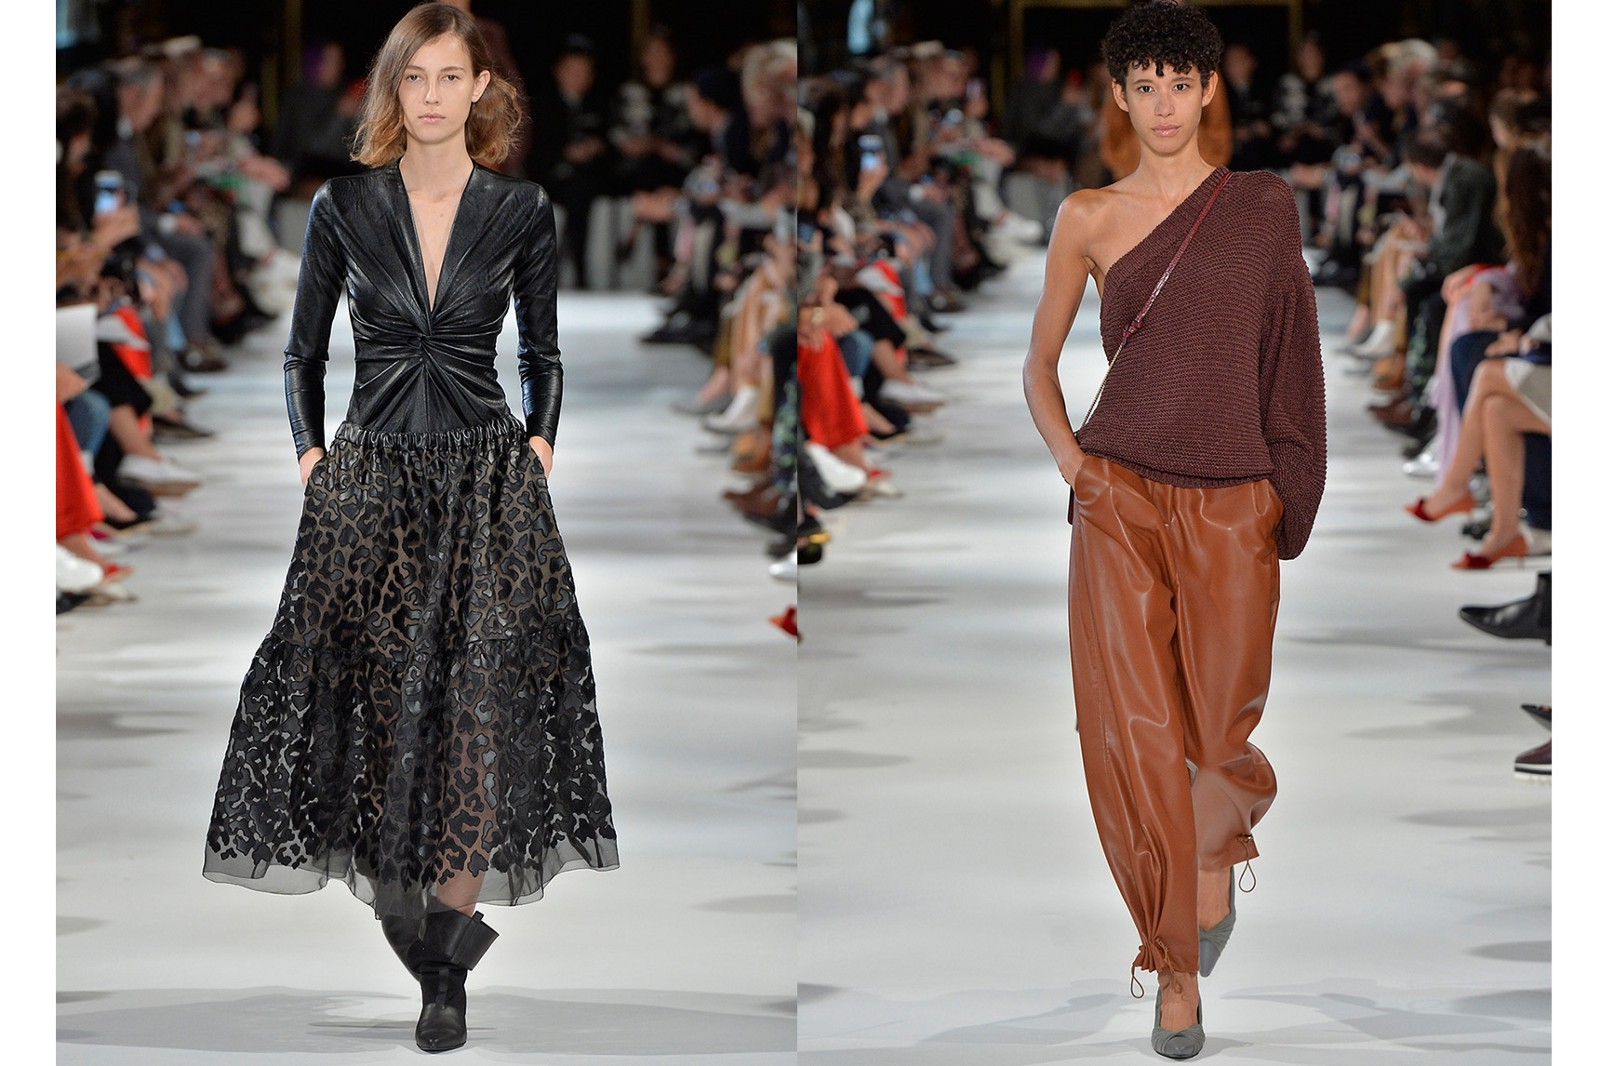 f431b21073f From left: Diversifying its use of faux leather, Stella McCartney, for the  first time introduced faux leather in her ready-to-wear offerings; ...